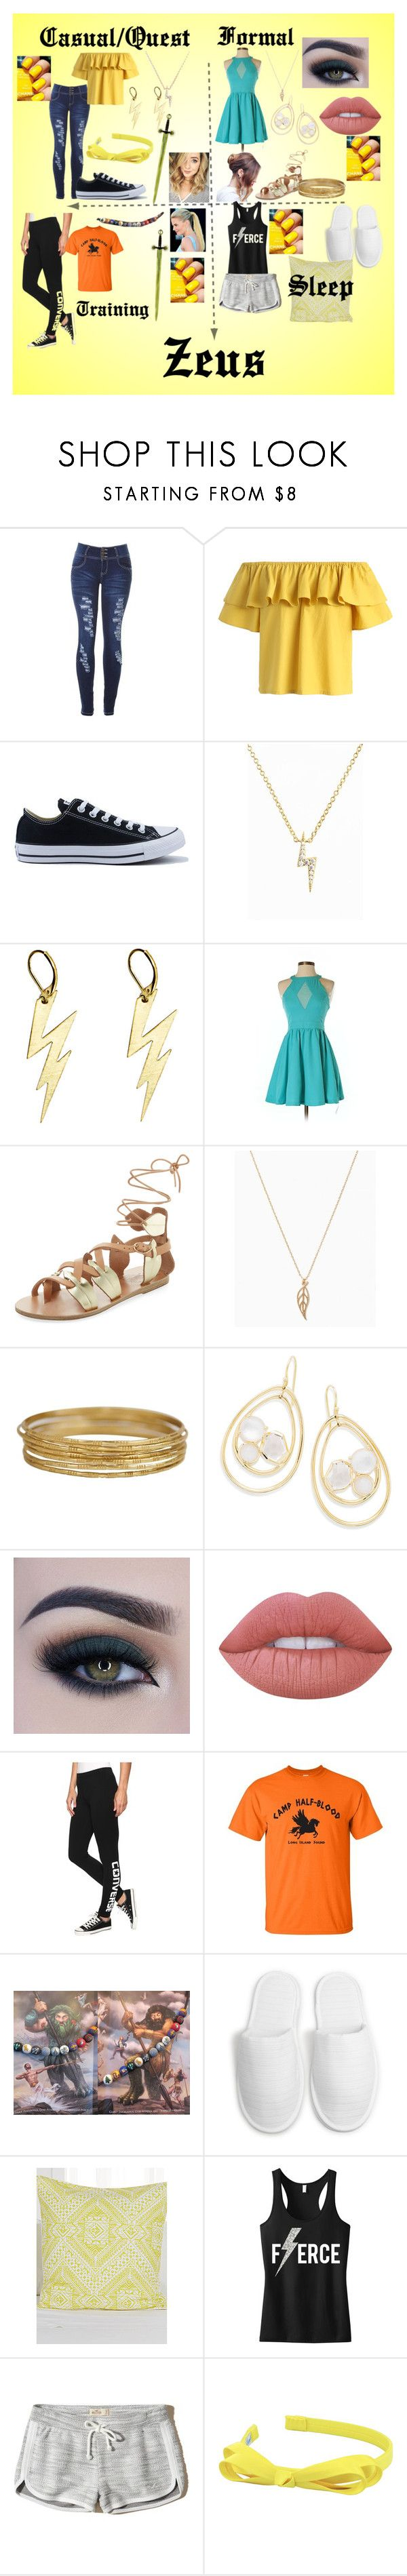 """""""Cabin #1"""" by stonecldfxlol on Polyvore featuring Chicwish, Converse, Sugar Bean Jewelry, Zara Taylor, Tea & Cup, Ancient Greek Sandals, Ippolita, Too Faced Cosmetics, Lime Crime and KAS Australia"""